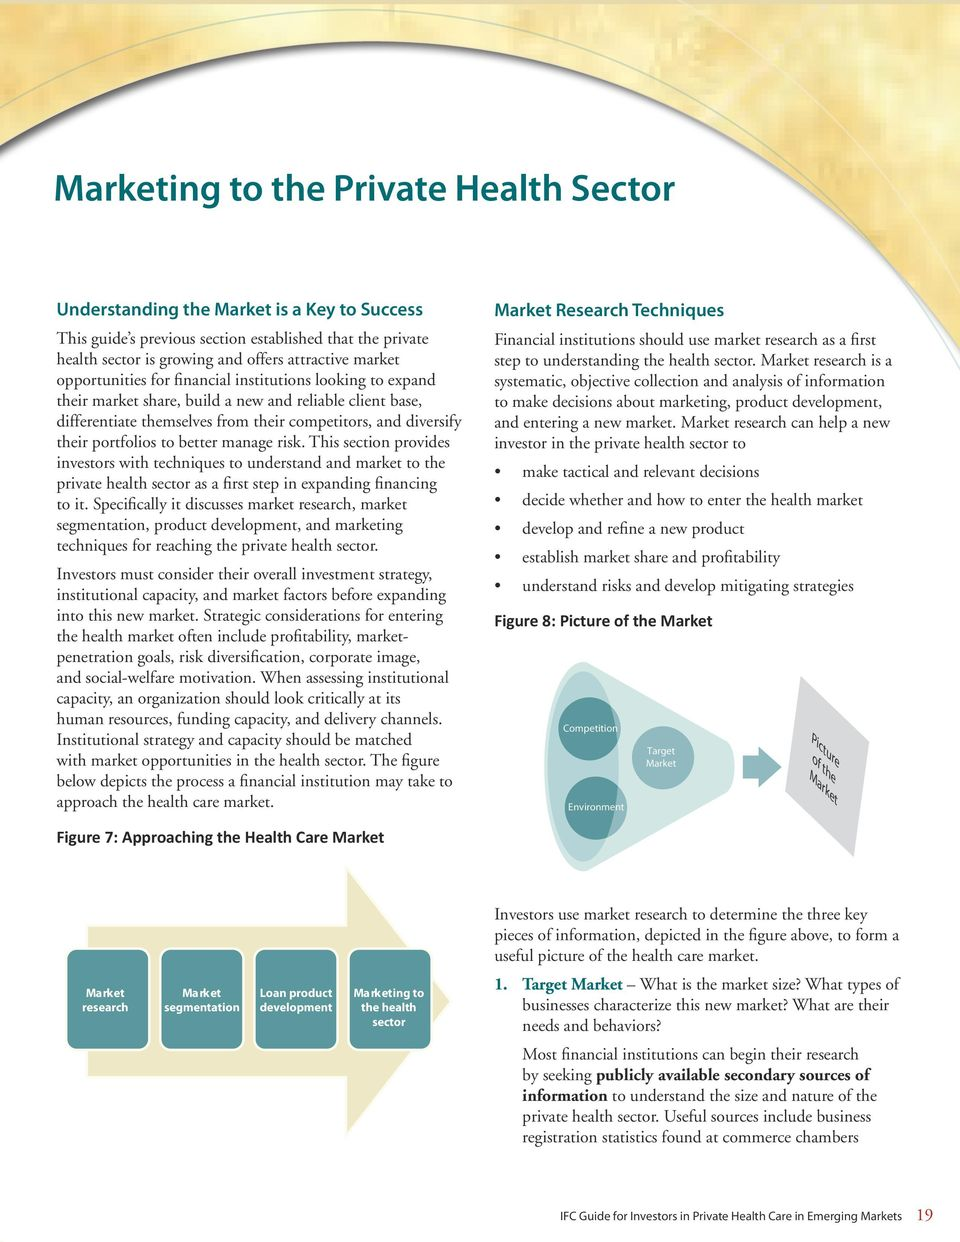 better manage risk. This section provides investors with techniques to understand and market to the private health sector as a first step in expanding financing to it.